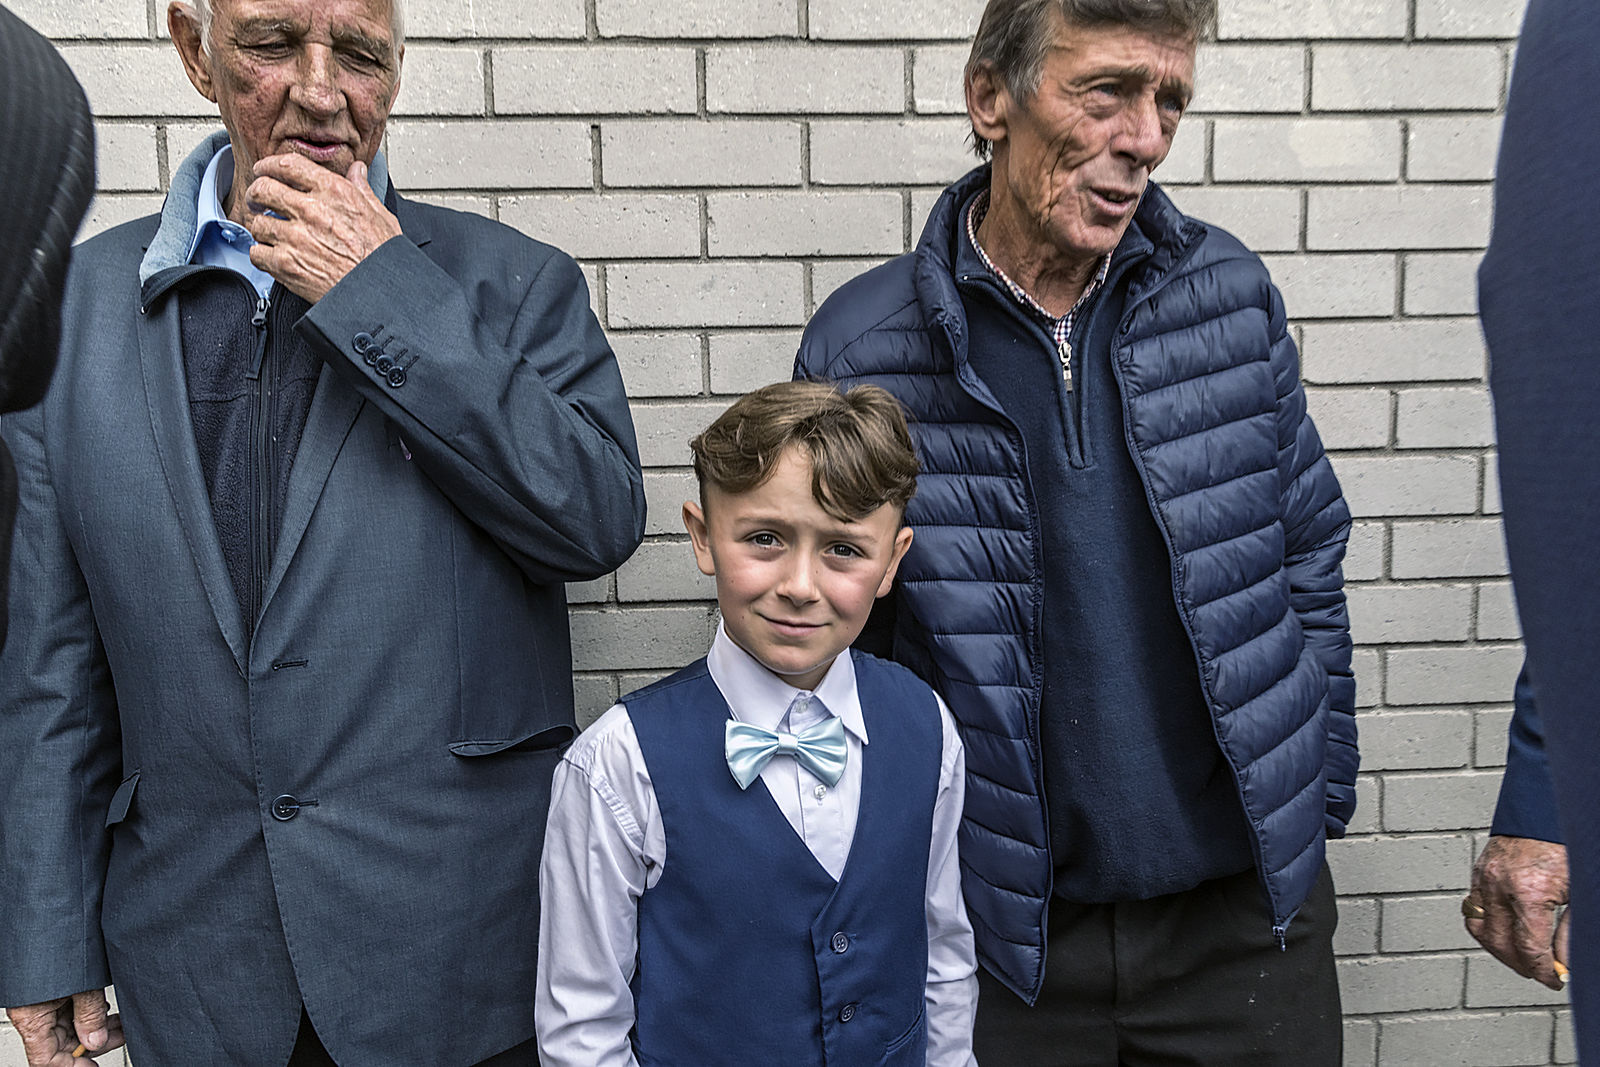 Boy with Turquoise Bow Tie, Wexford, Ireland 2019